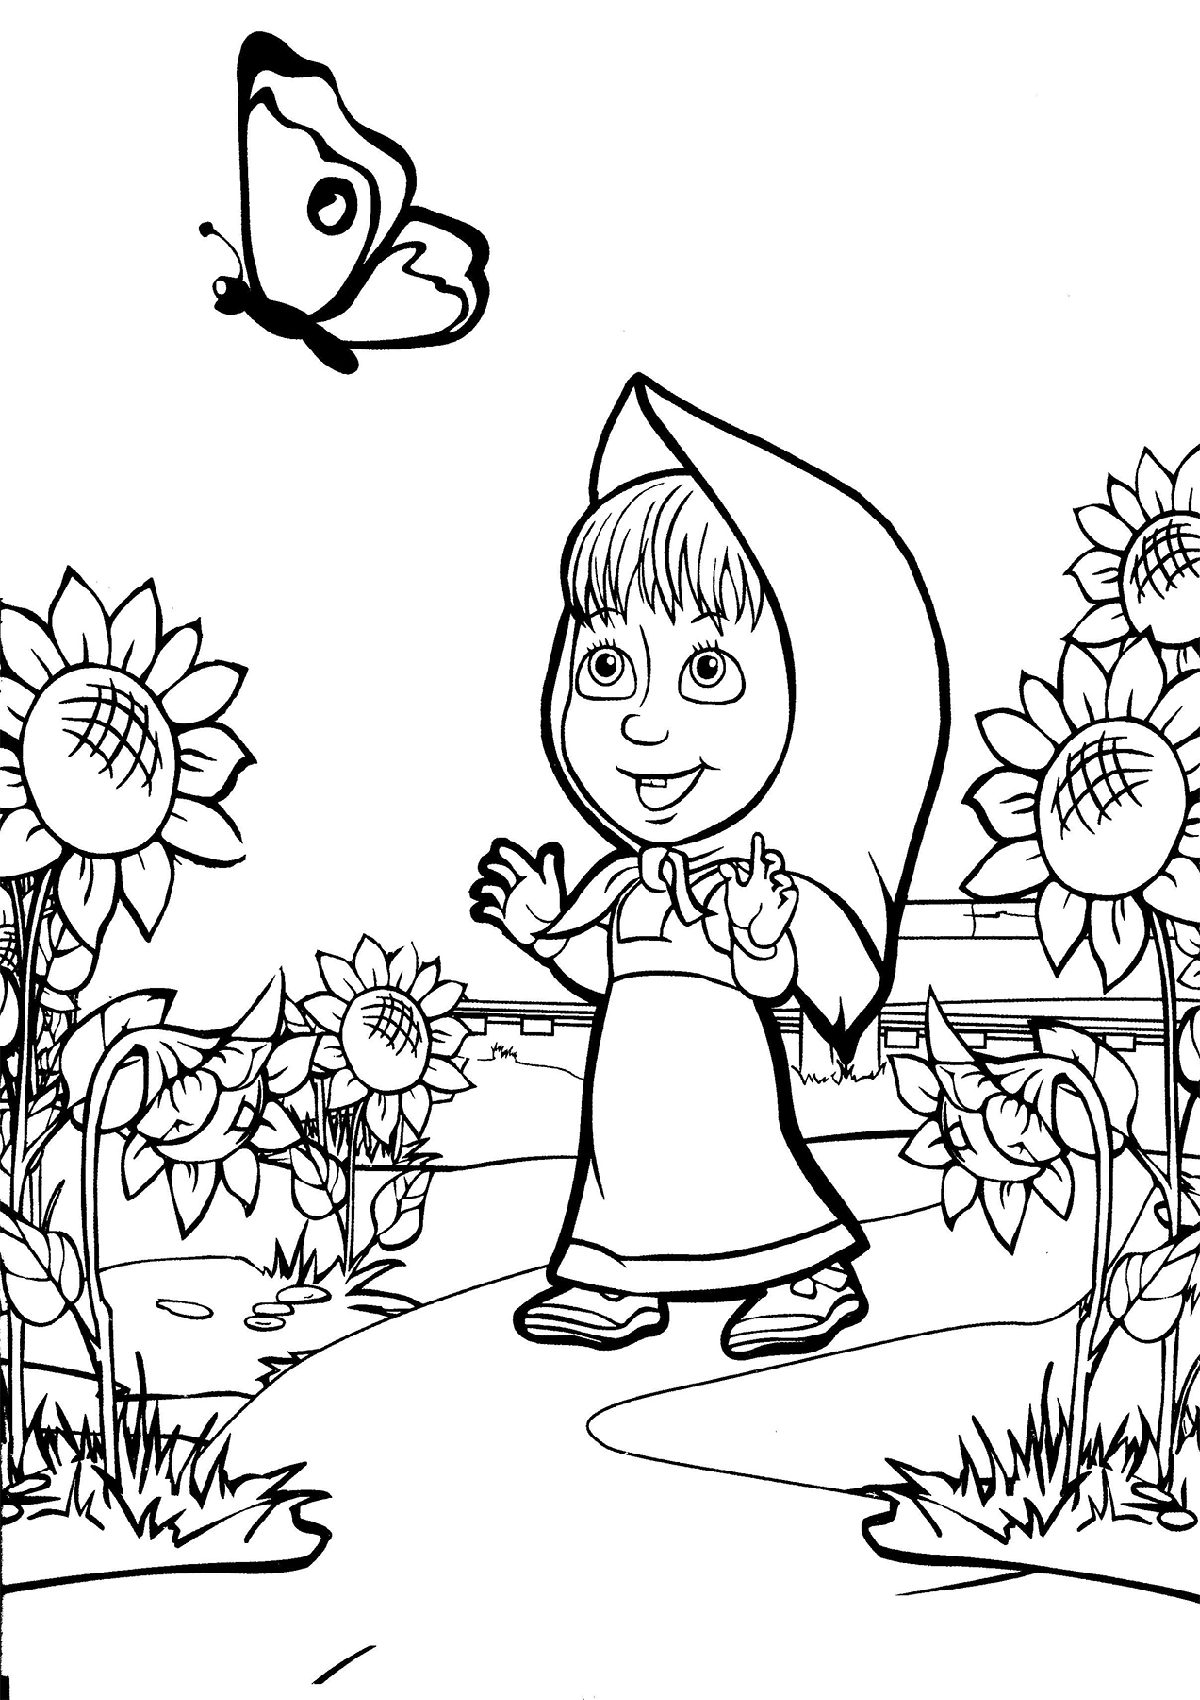 - 13 Masha And The Bear Coloring Pages {Printable All Characters